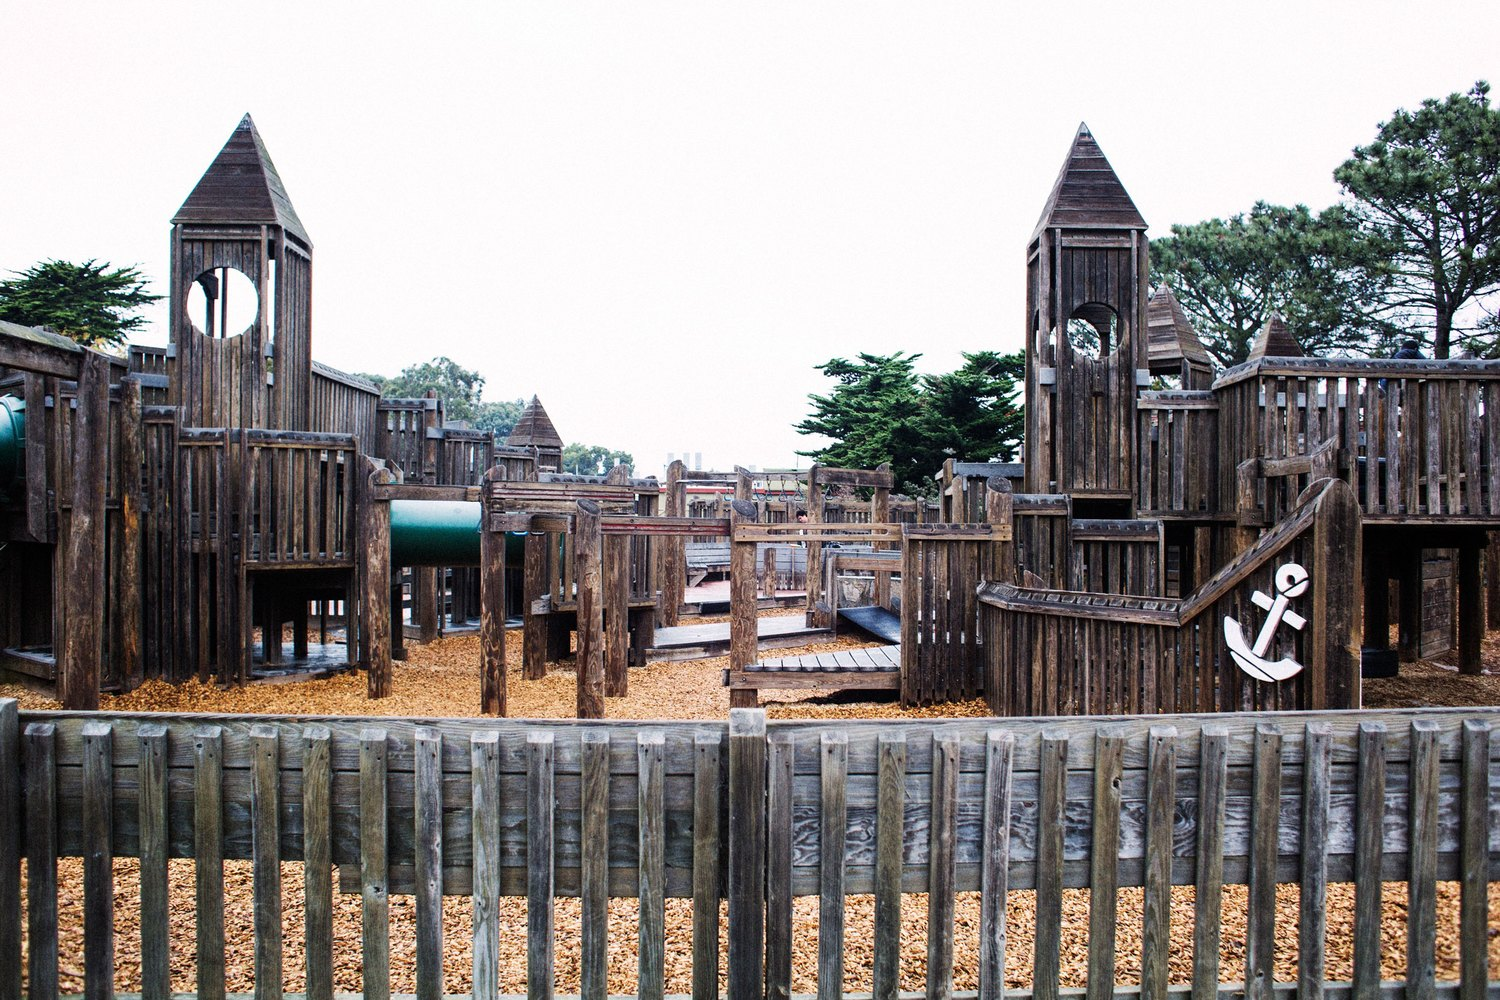 If you remember this playground, your childhood was awesome. Image 9.